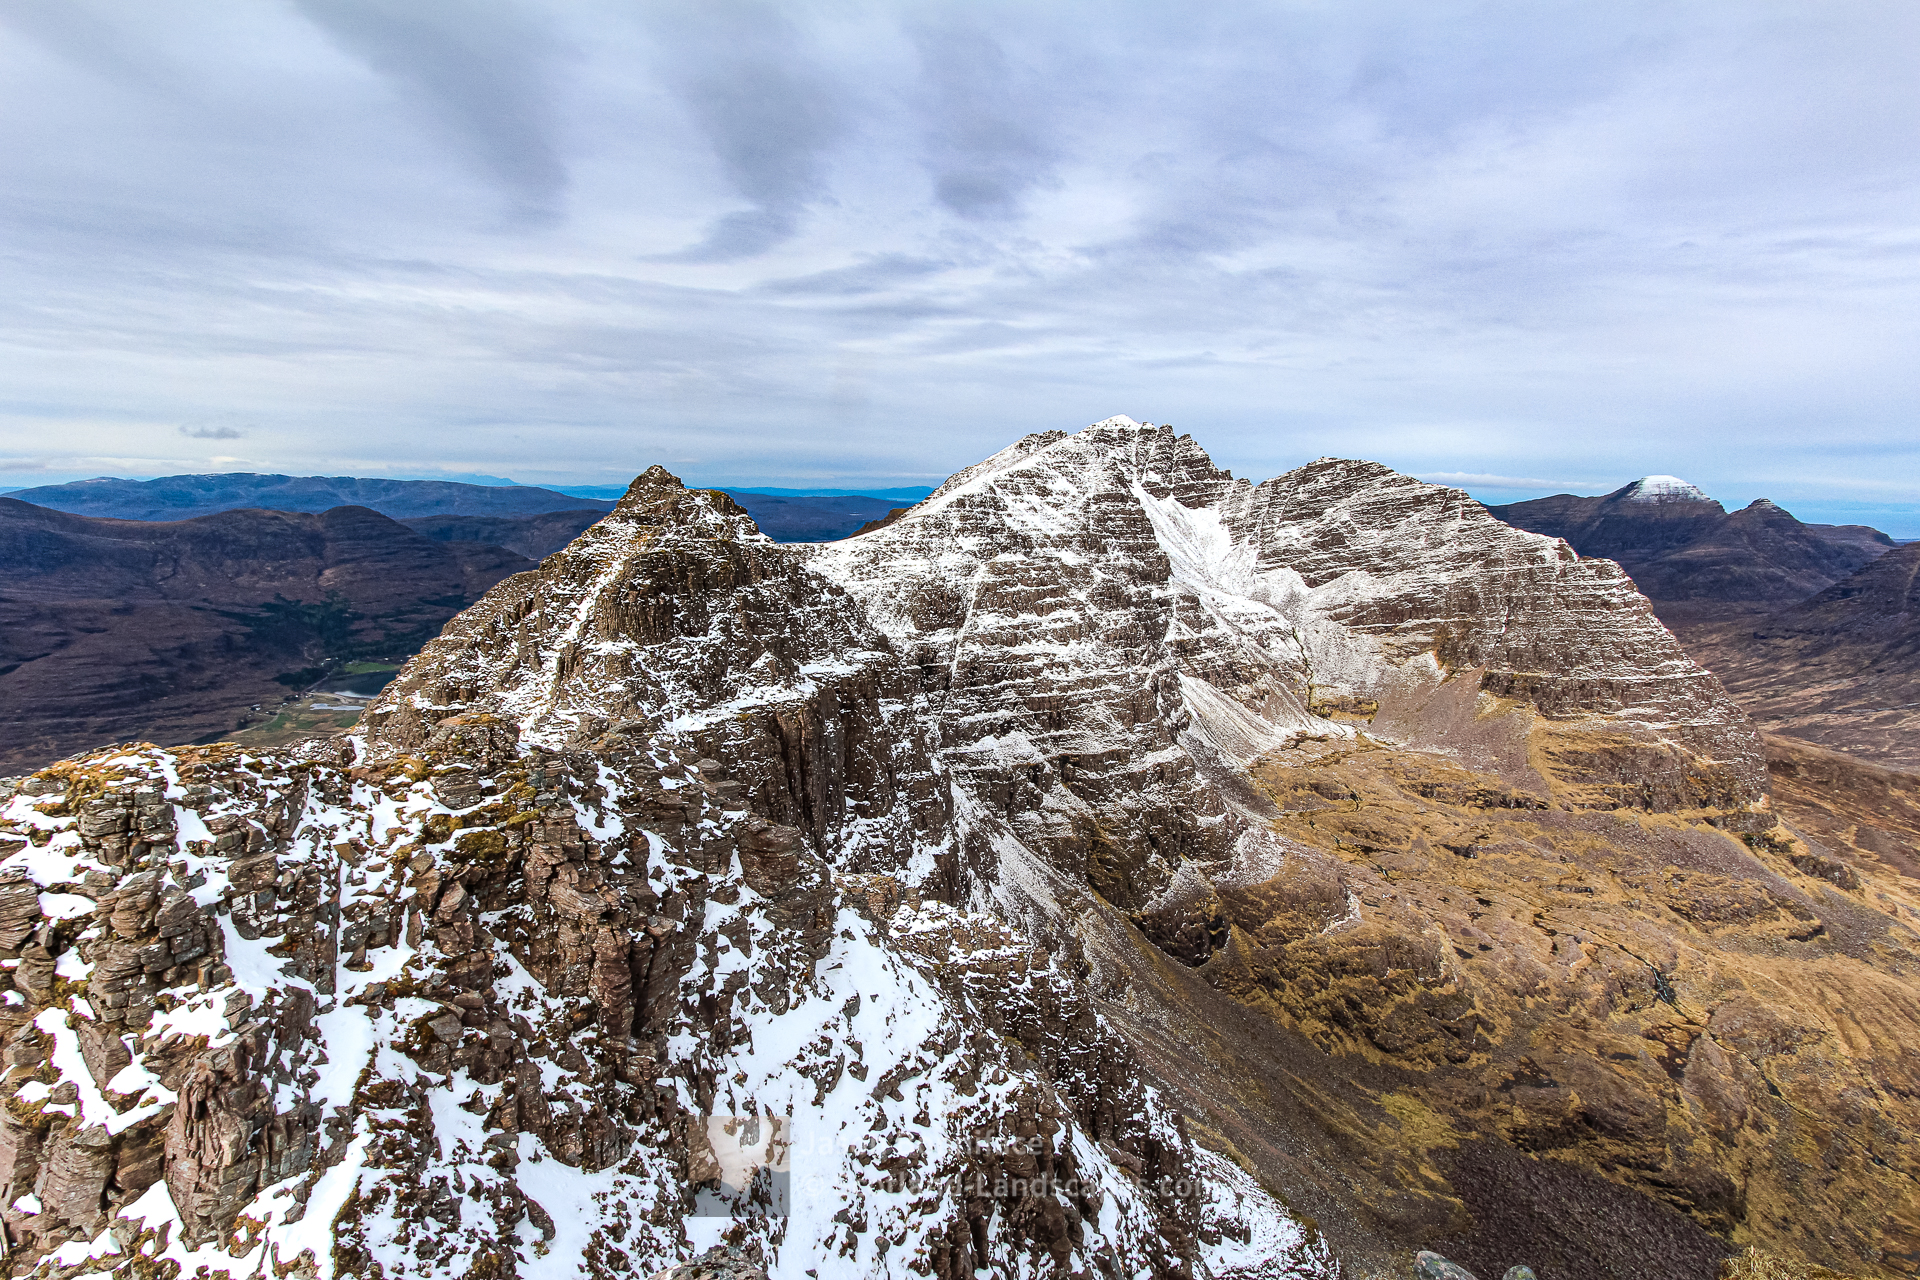 Photo of spring snow on the Am Fasarinen pinnacles and second Munro of Liathach, Mullach an Rathain